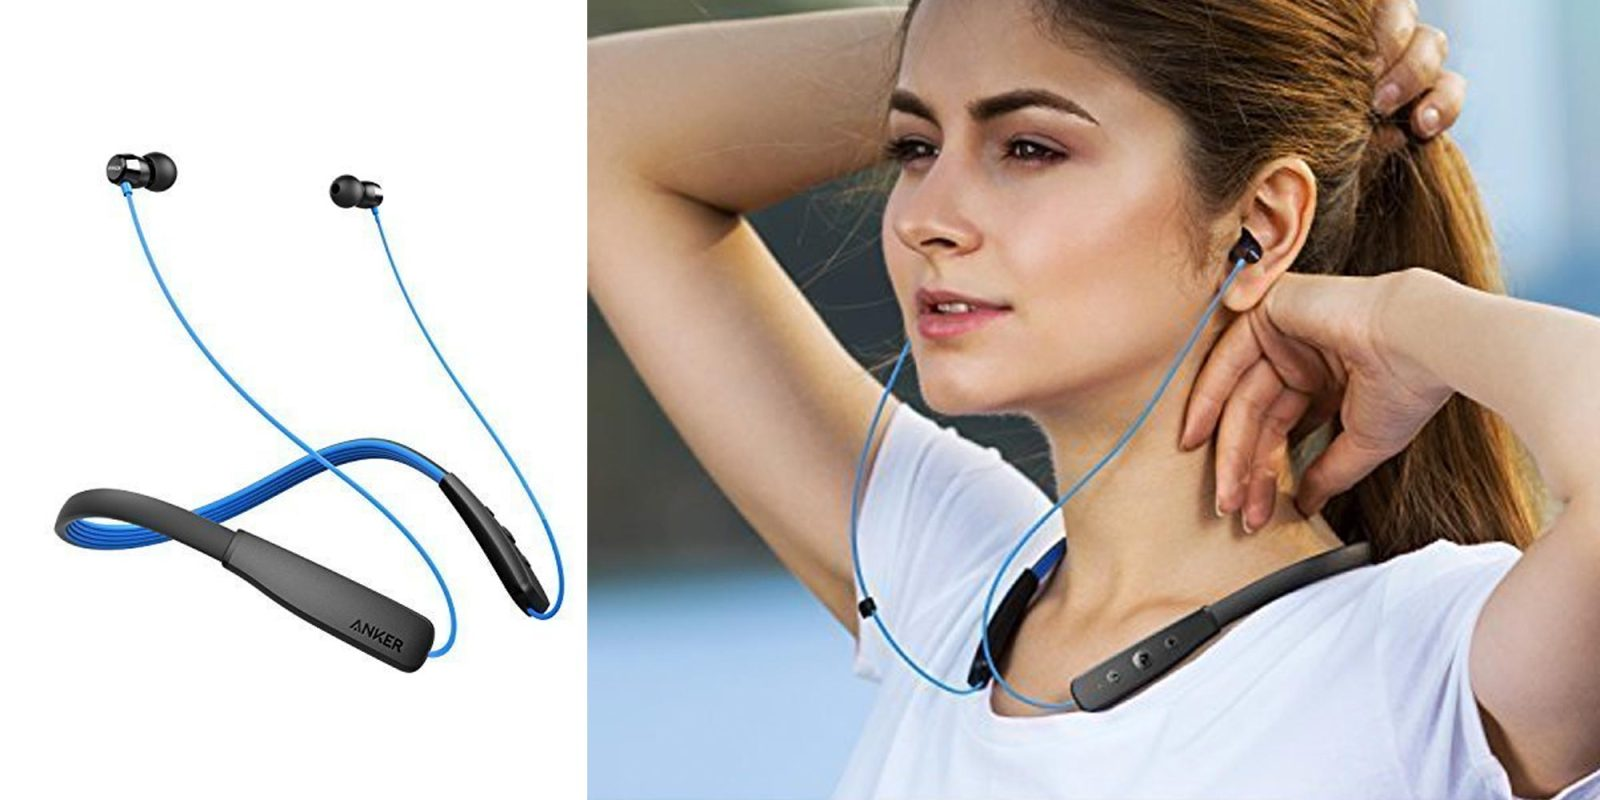 c7b2d78537f Anker knocks 50% off select SoundBuds Bluetooth headphones from $20 shipped